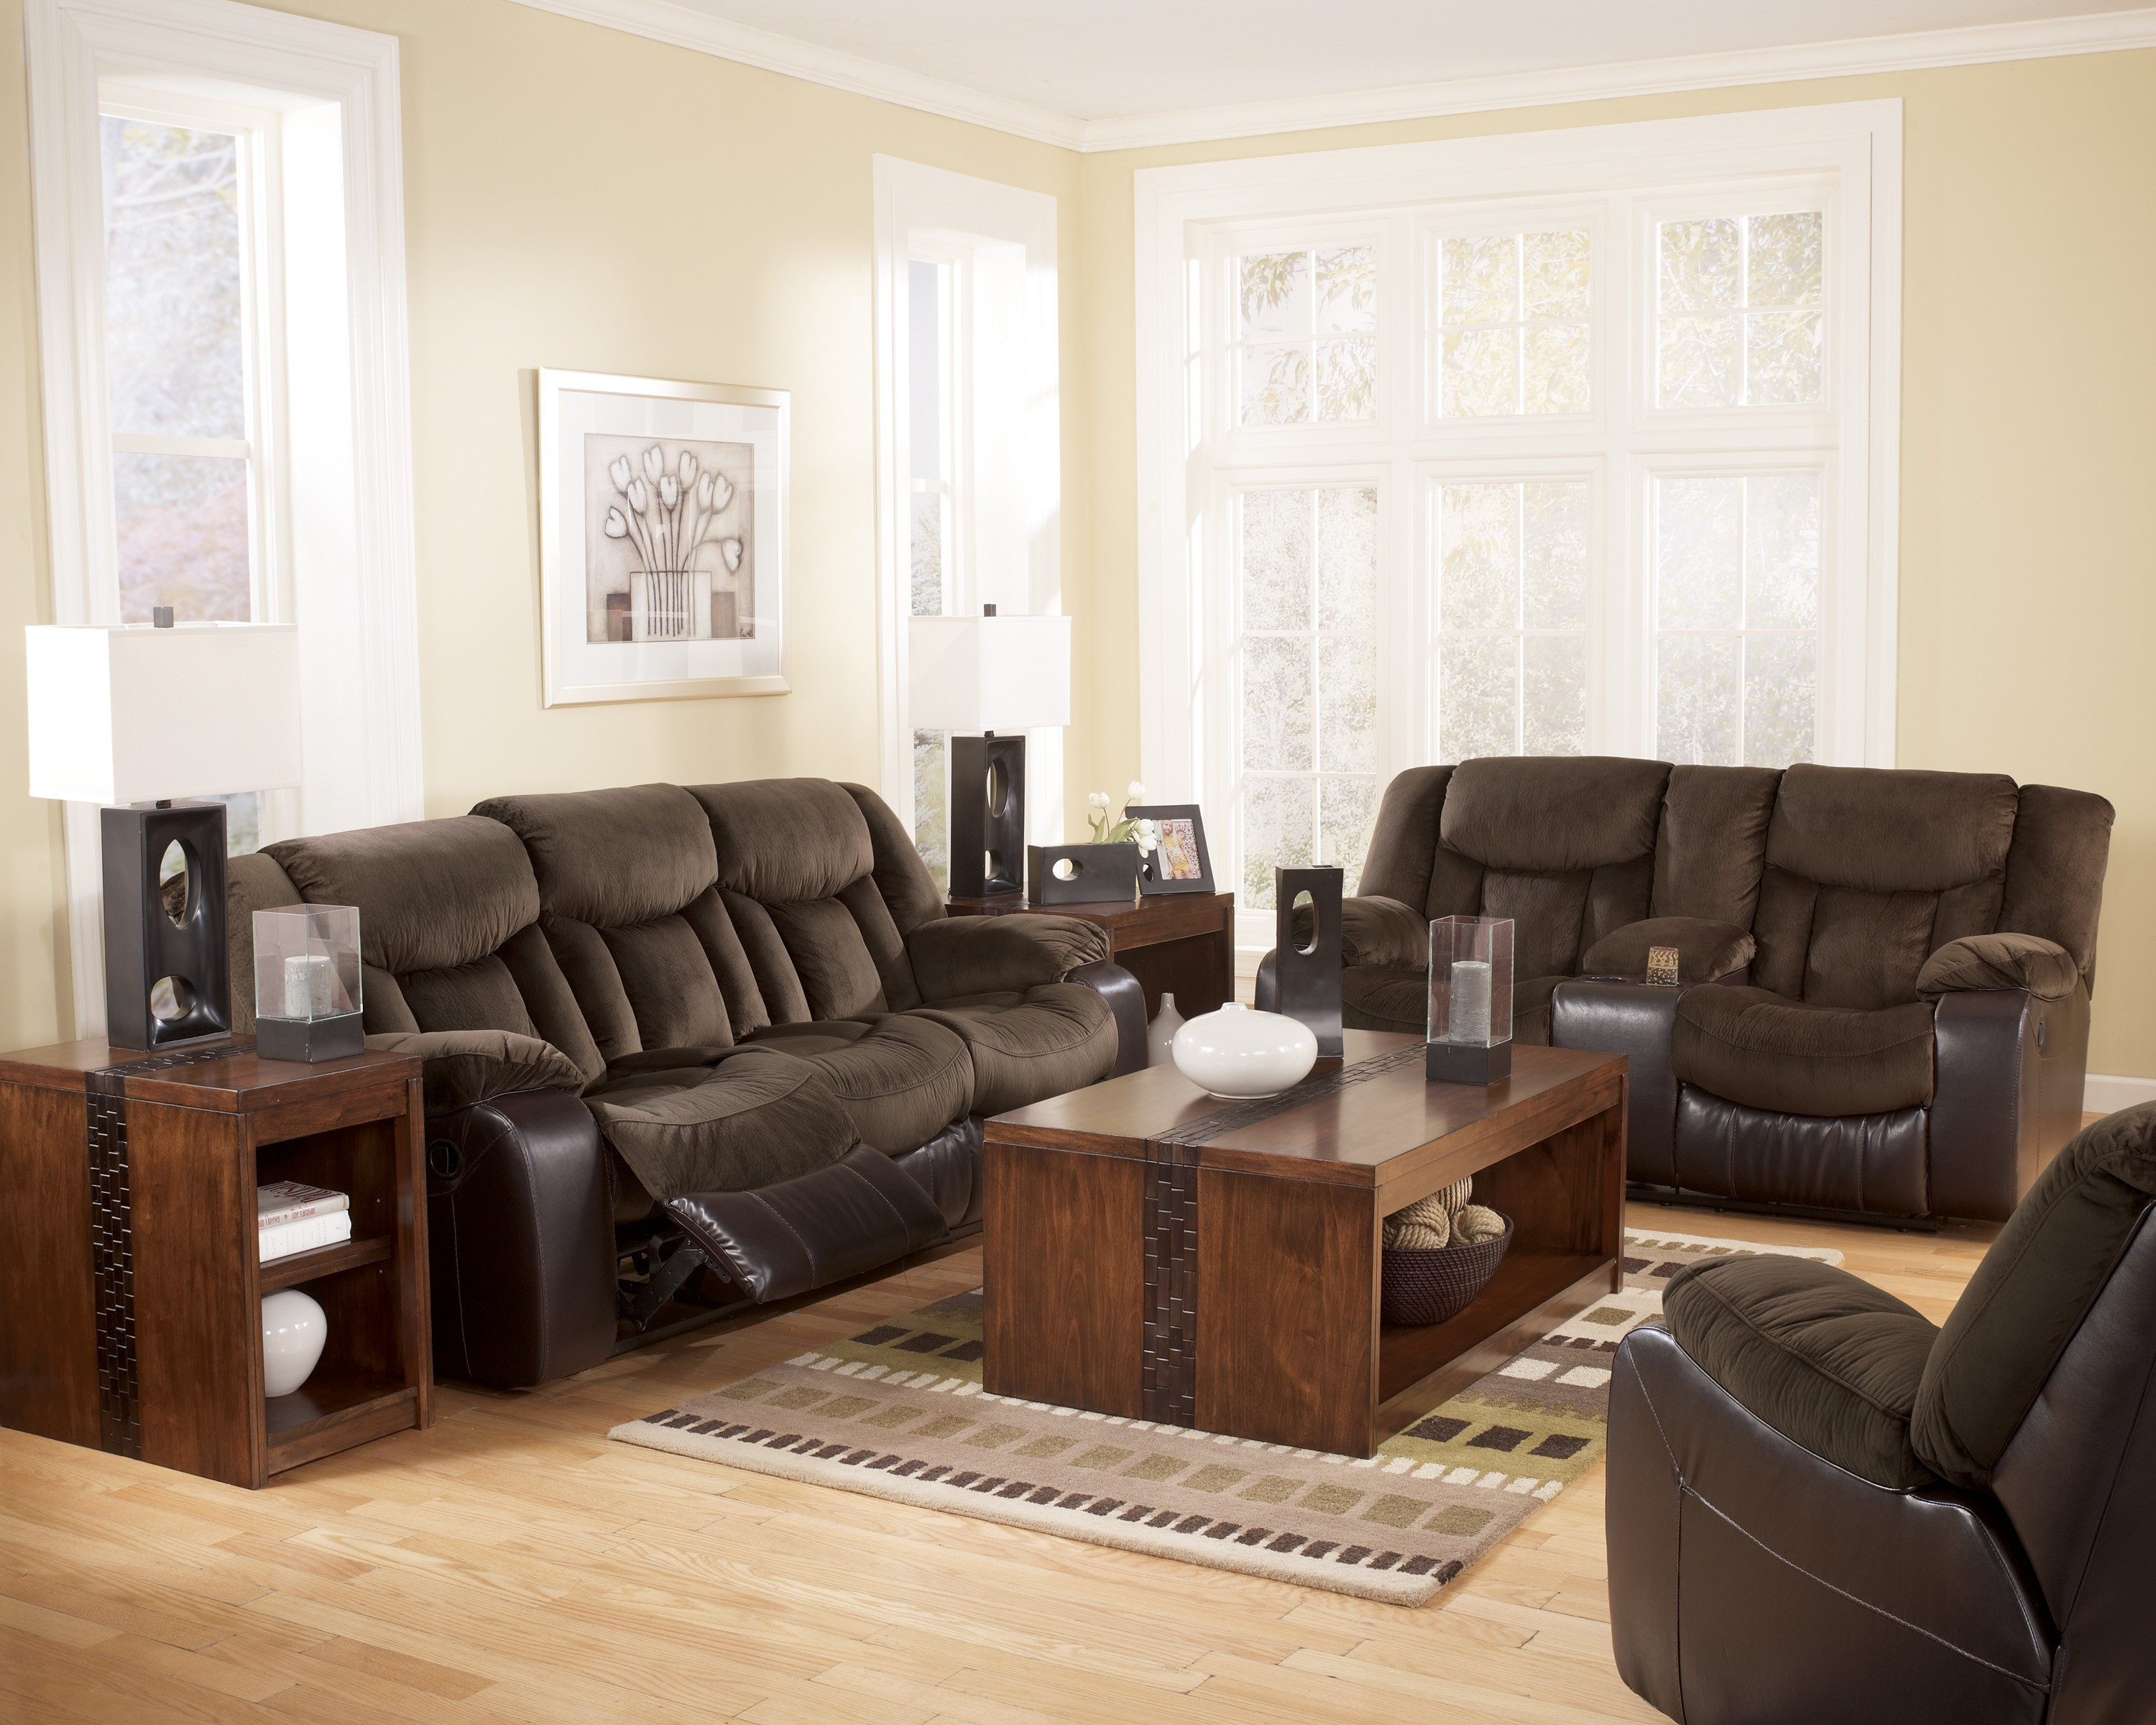 Tafton Java Reclining Sofa From Ashley 7920288 Coleman